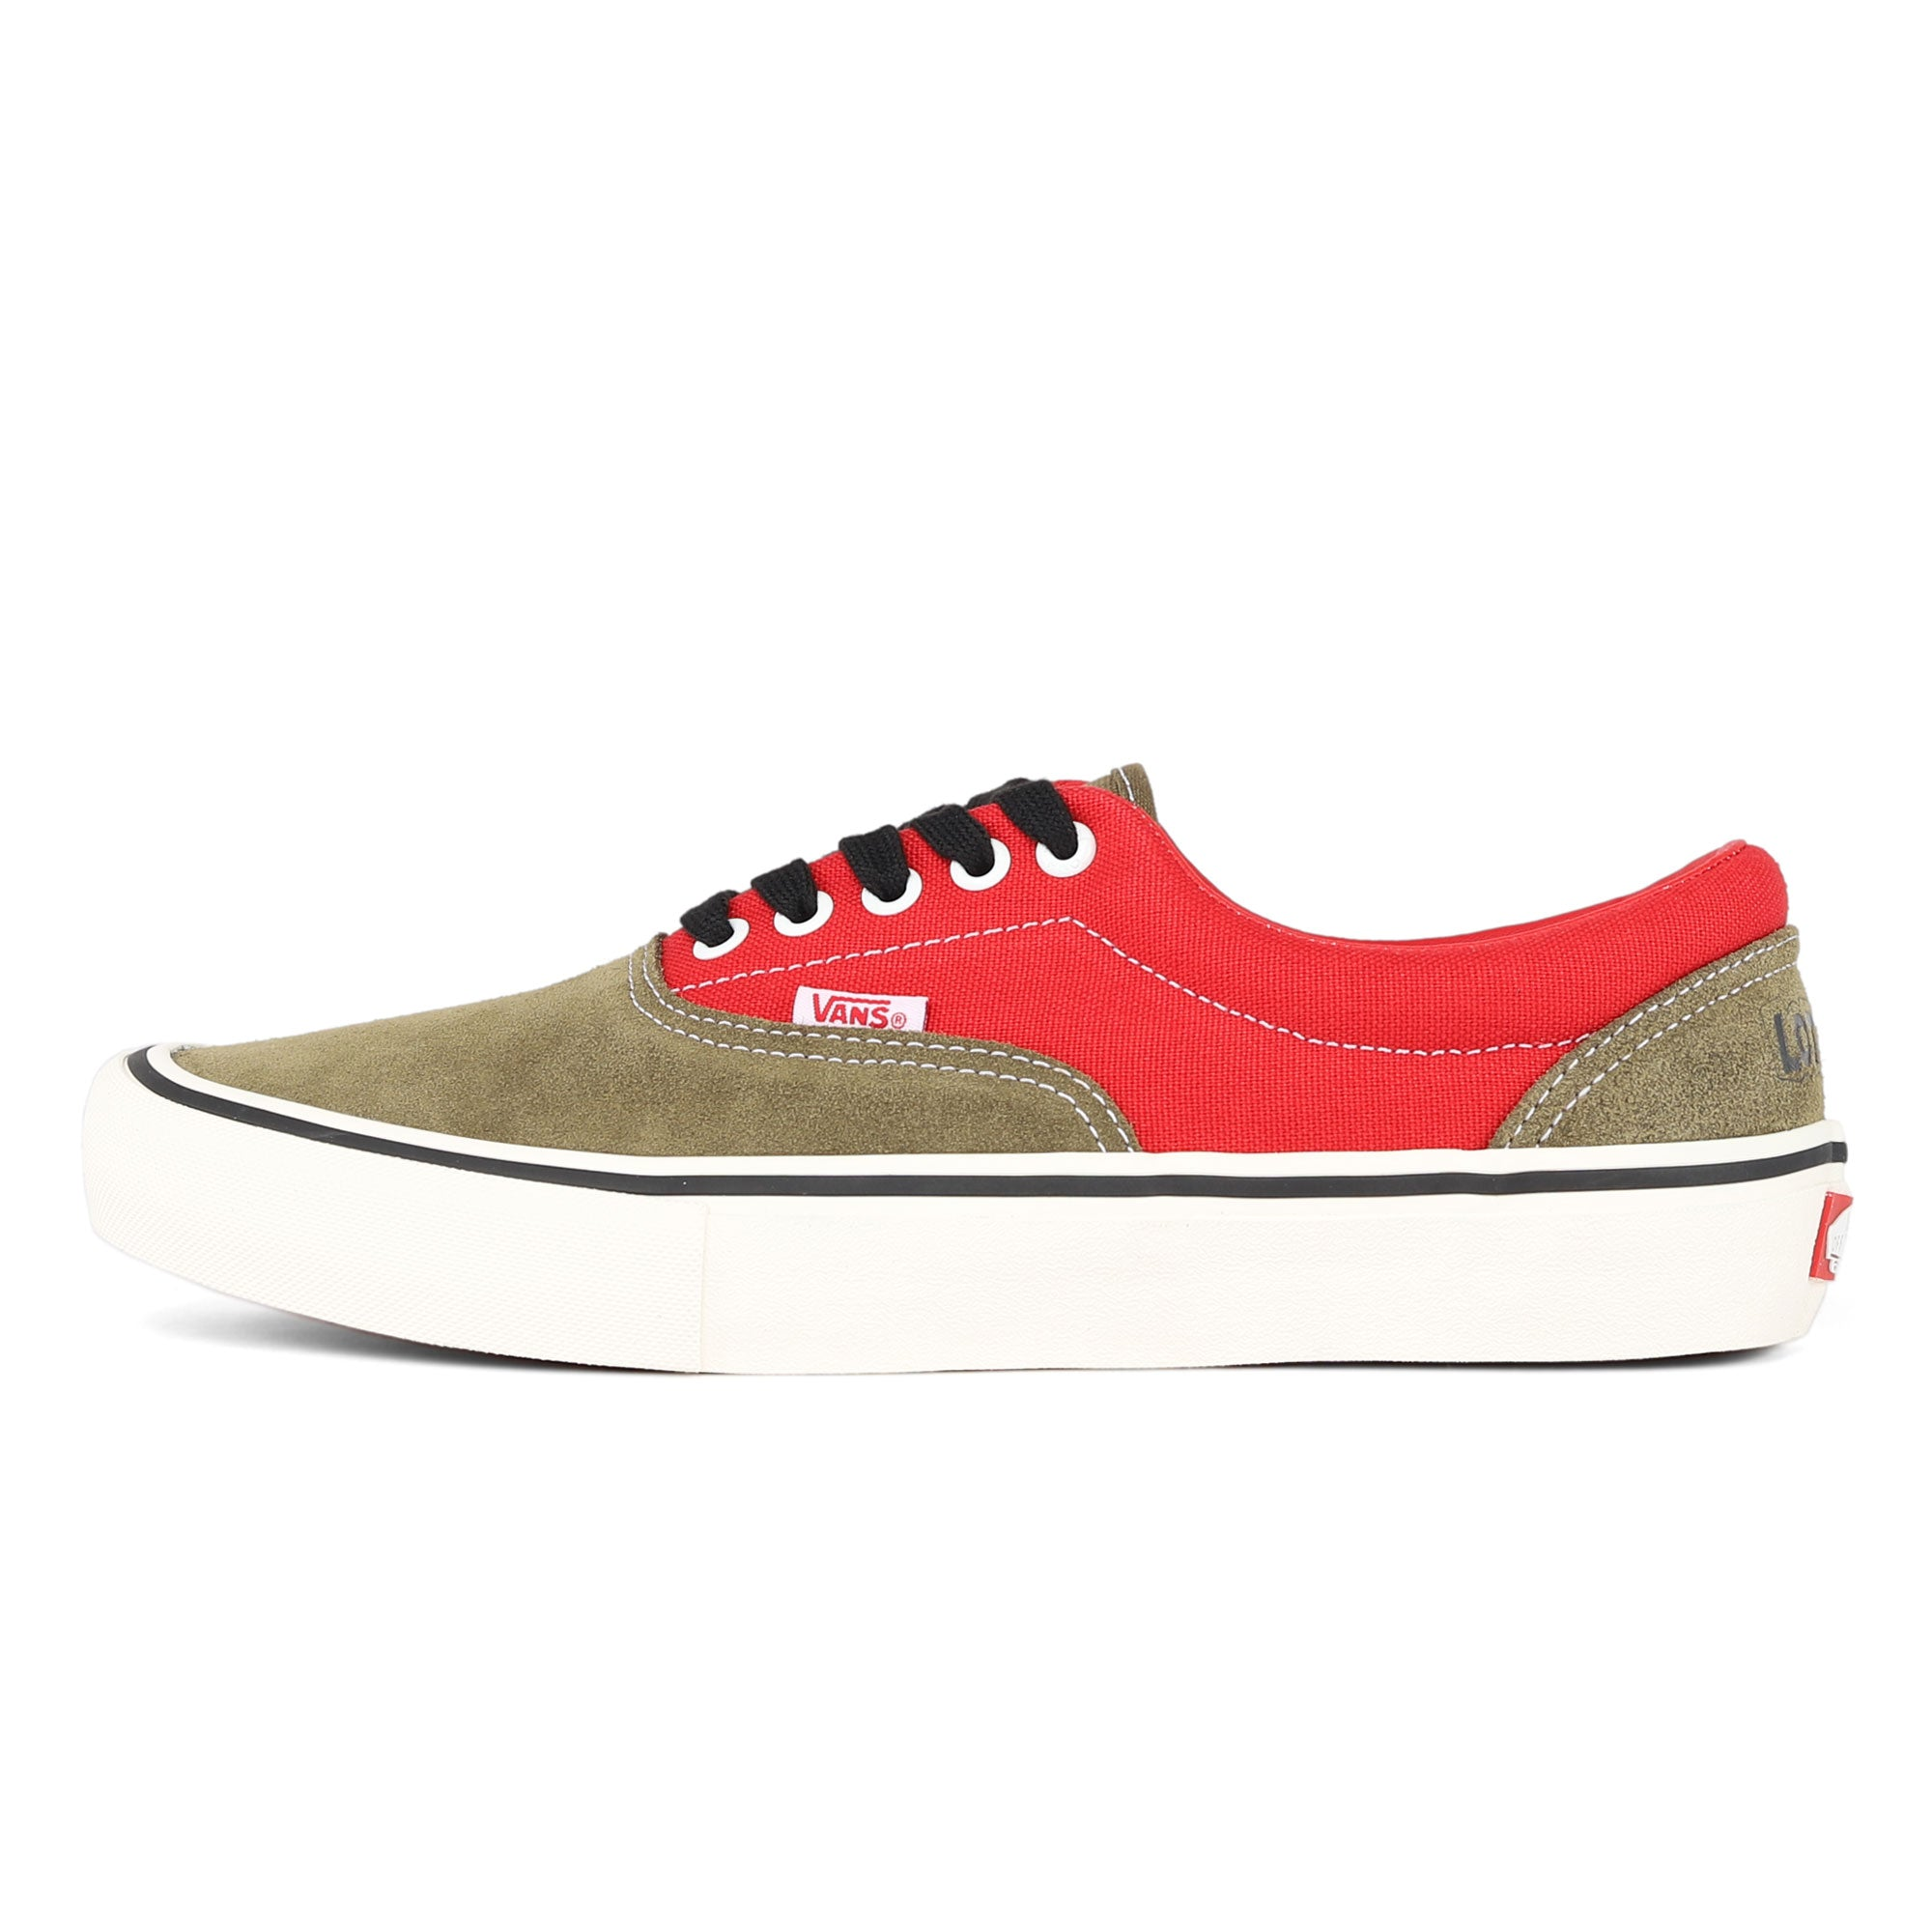 Vans X Lotties Era Pro LTD Product Photo #1